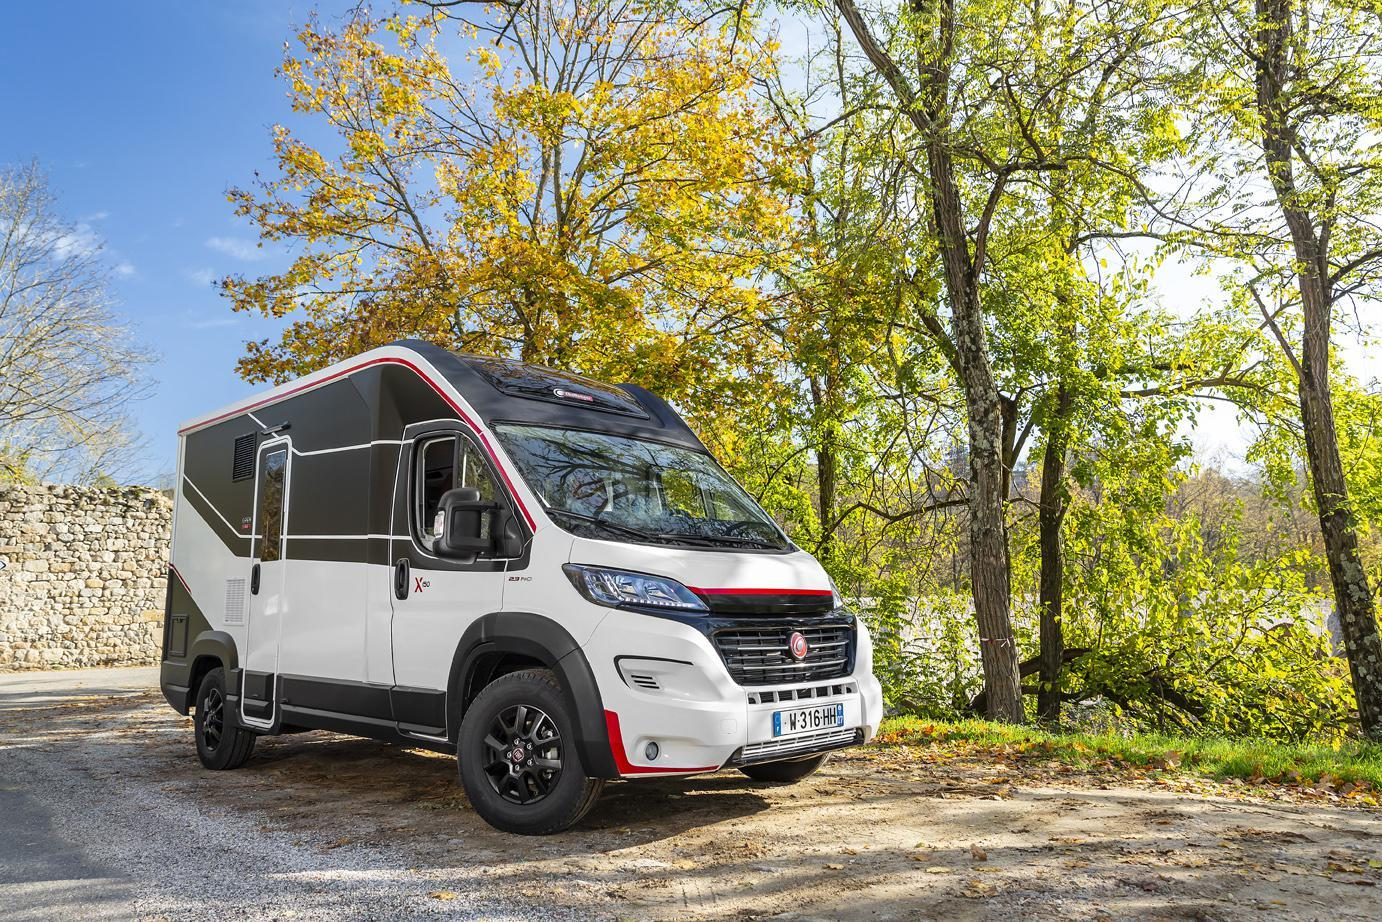 The Challenger Combo X150 has the wheelbase and length of a van but the interior of a small motorhome